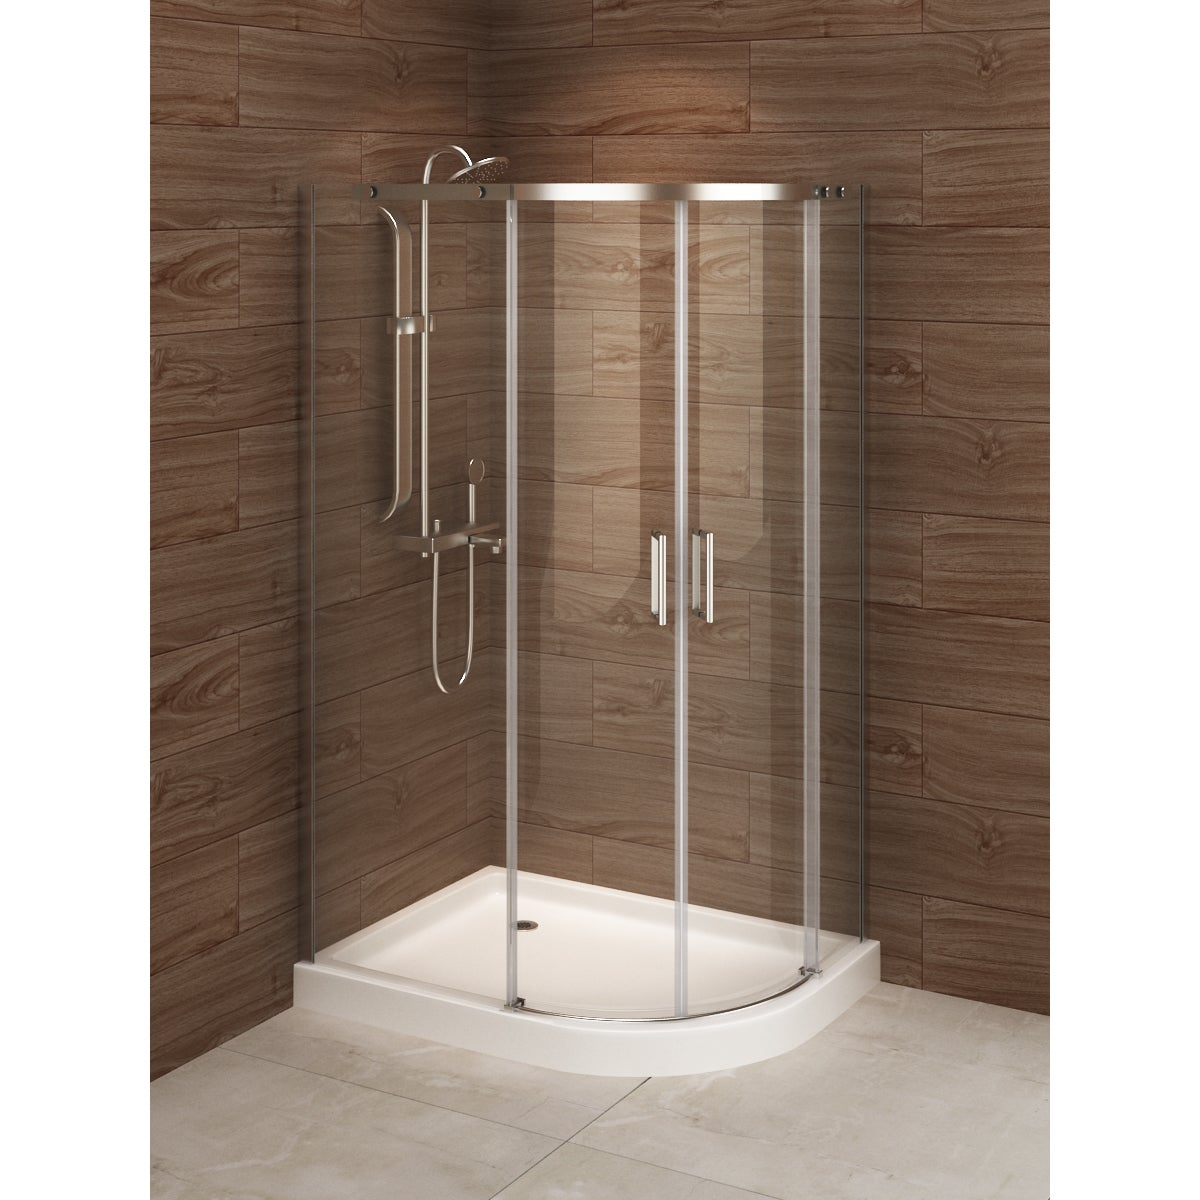 36 shower stalls | Plumbing Fixtures | Compare Prices at Nextag